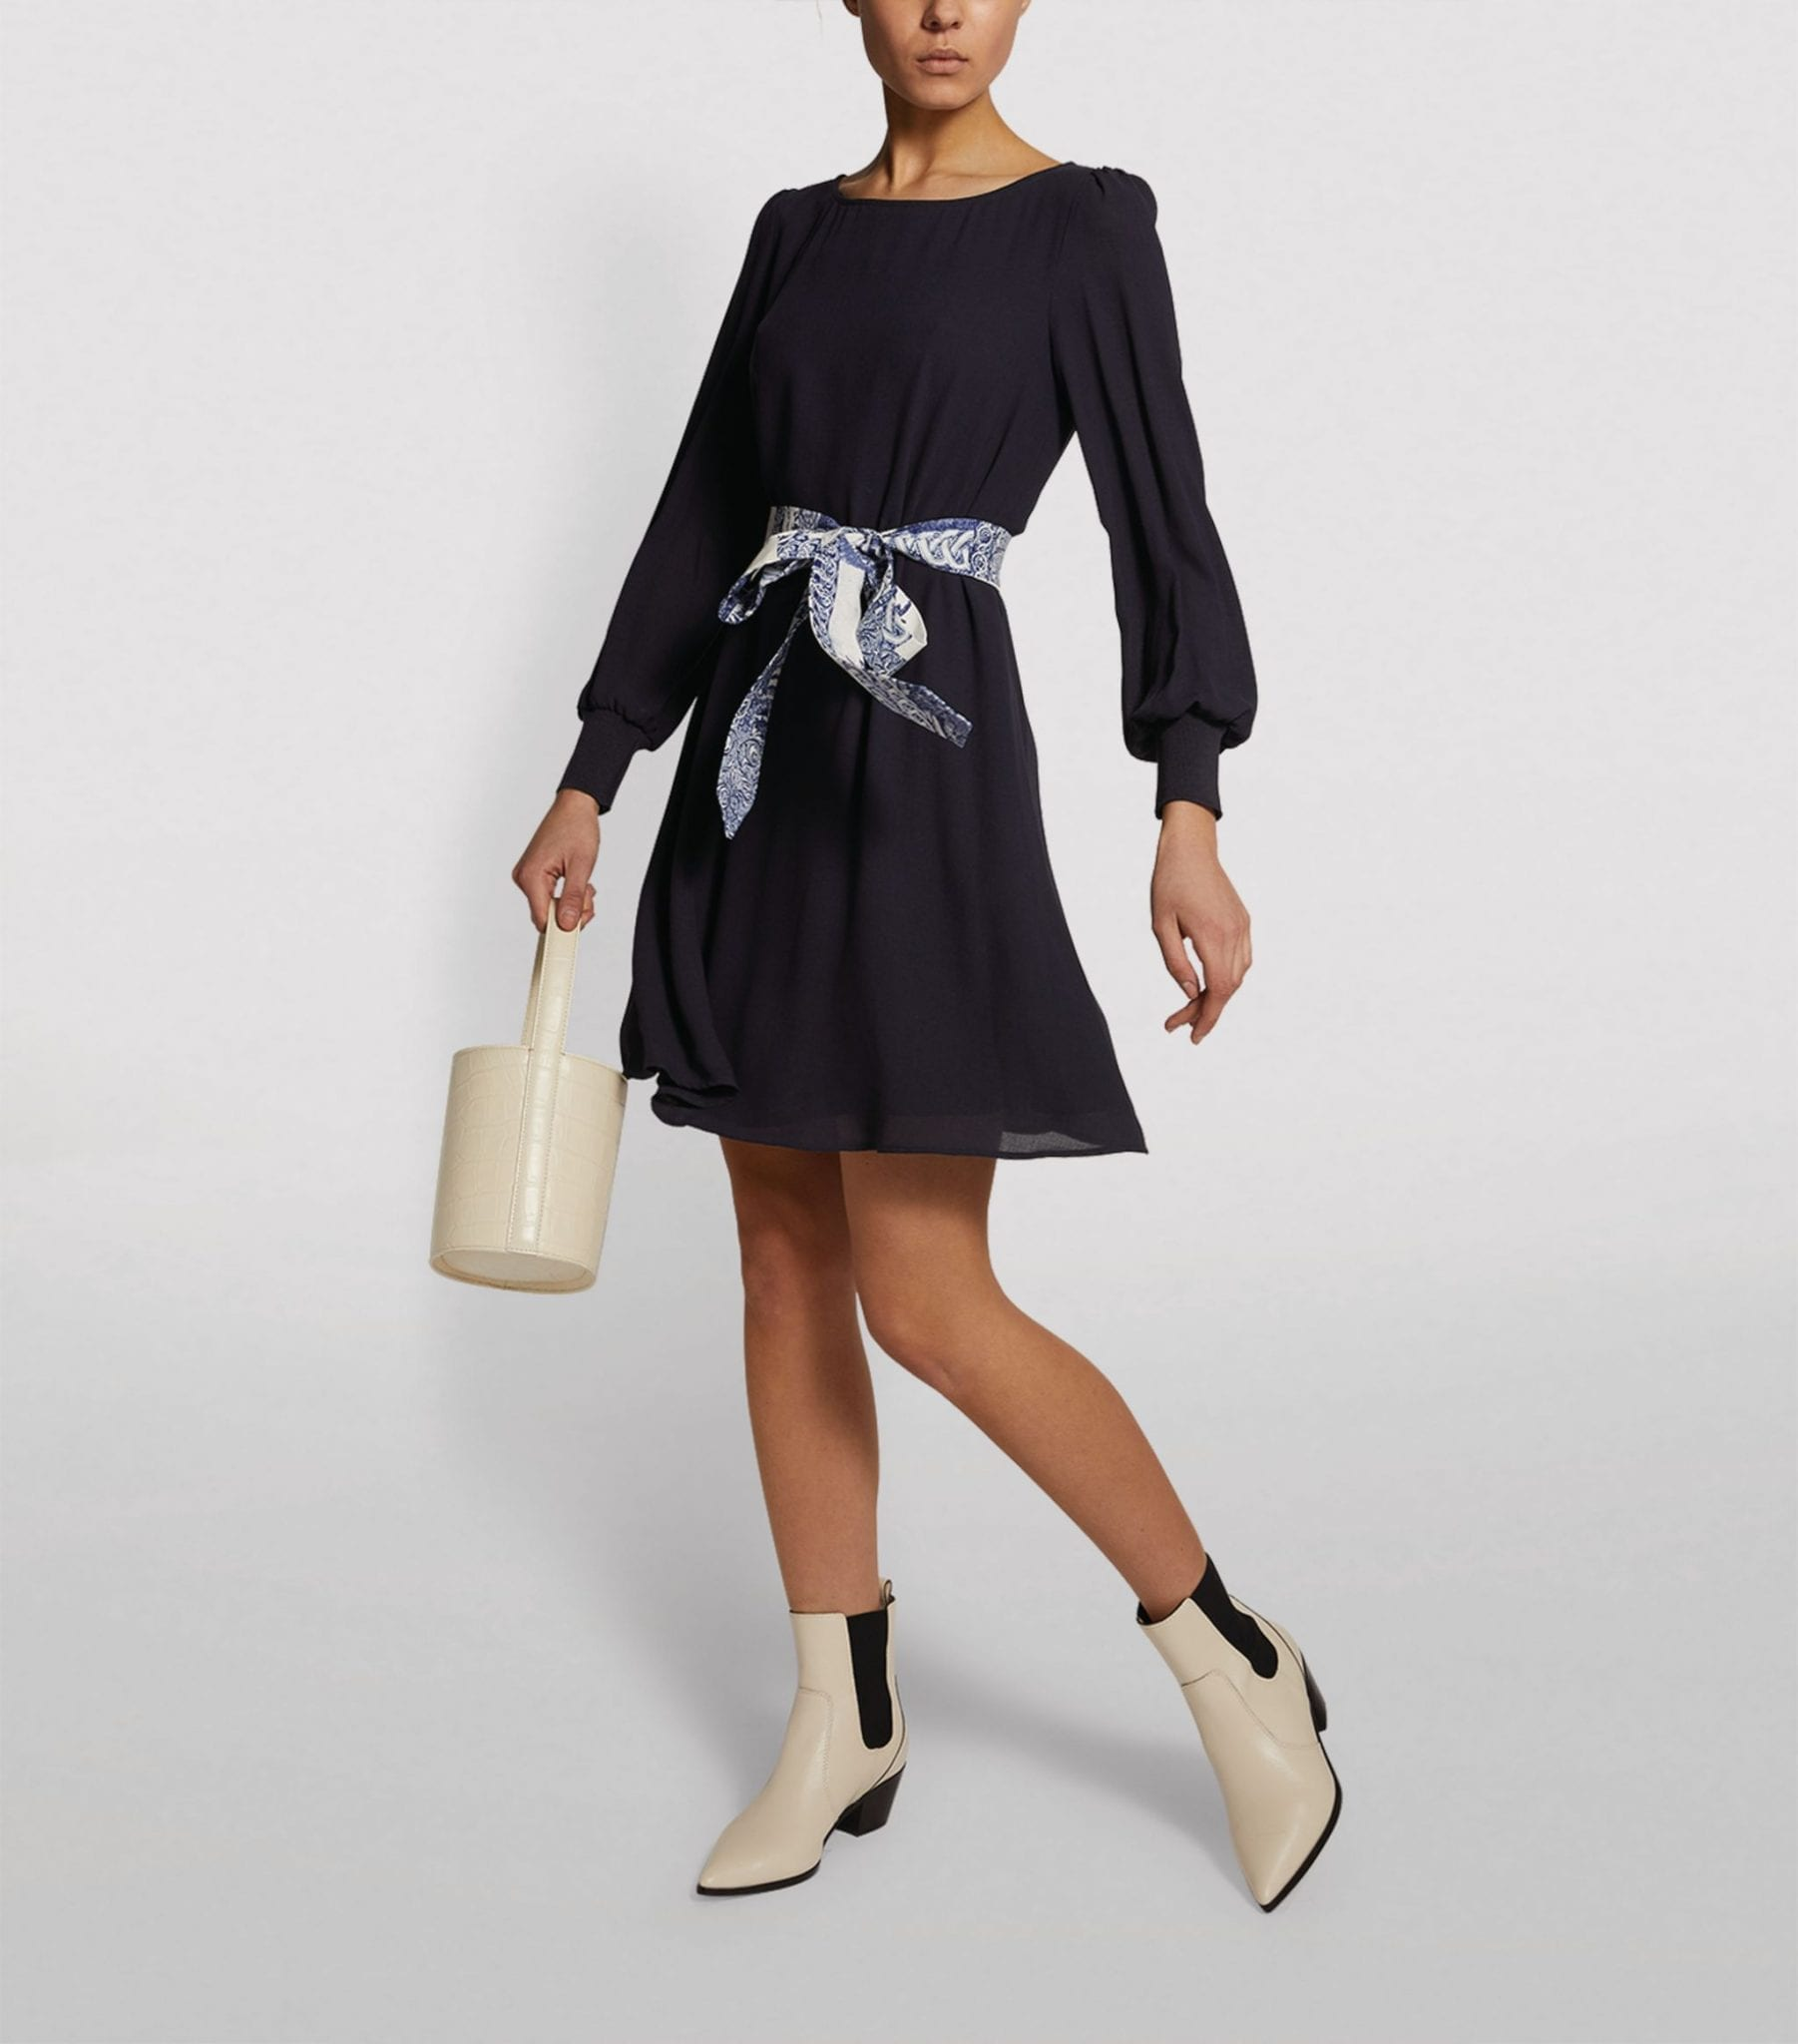 CLAUDIE PIERLOT Ribbon-Belt Dress